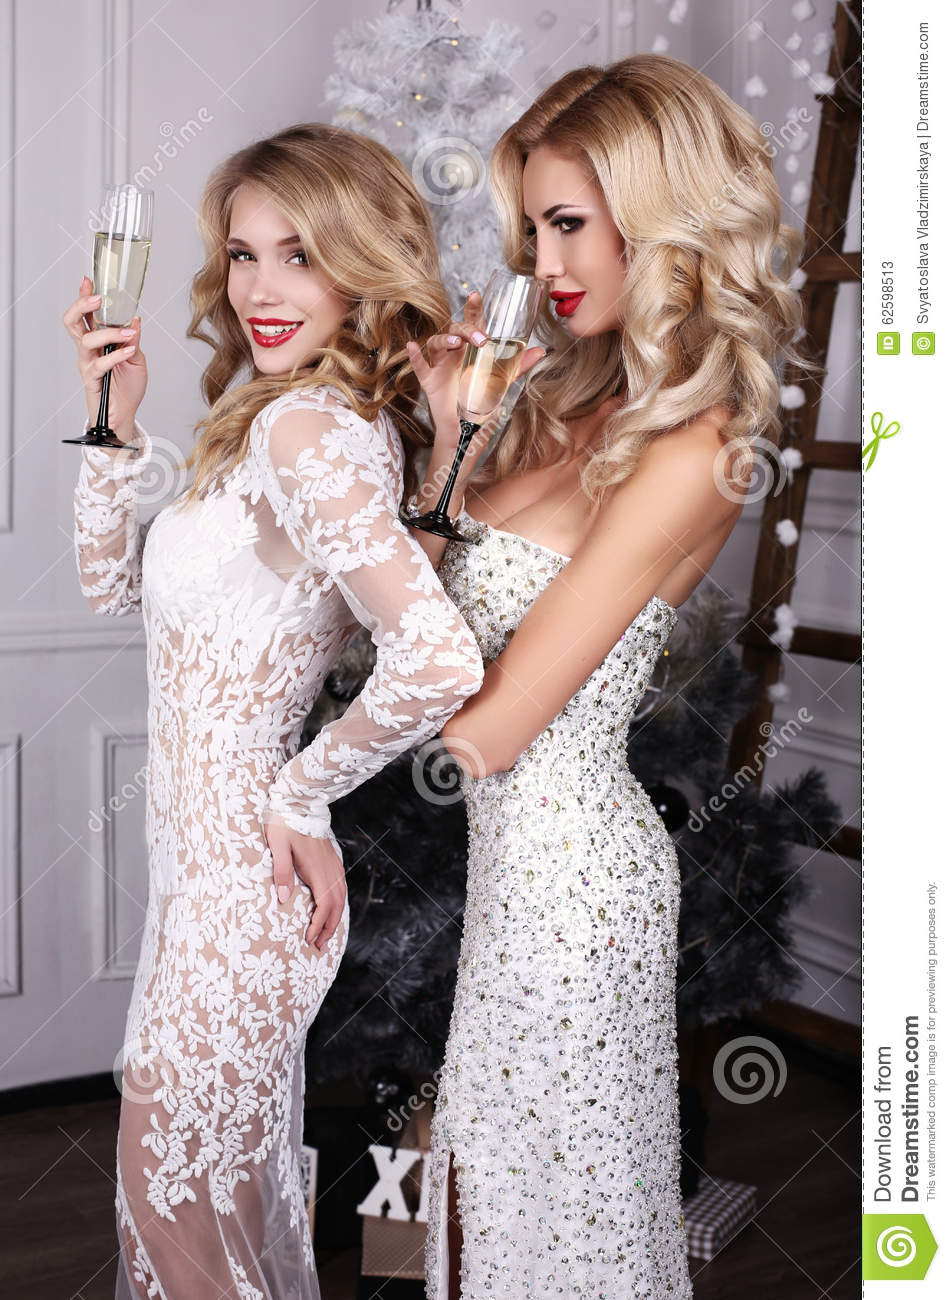 Beautiful Women With Champagne In Hands Celebrating New